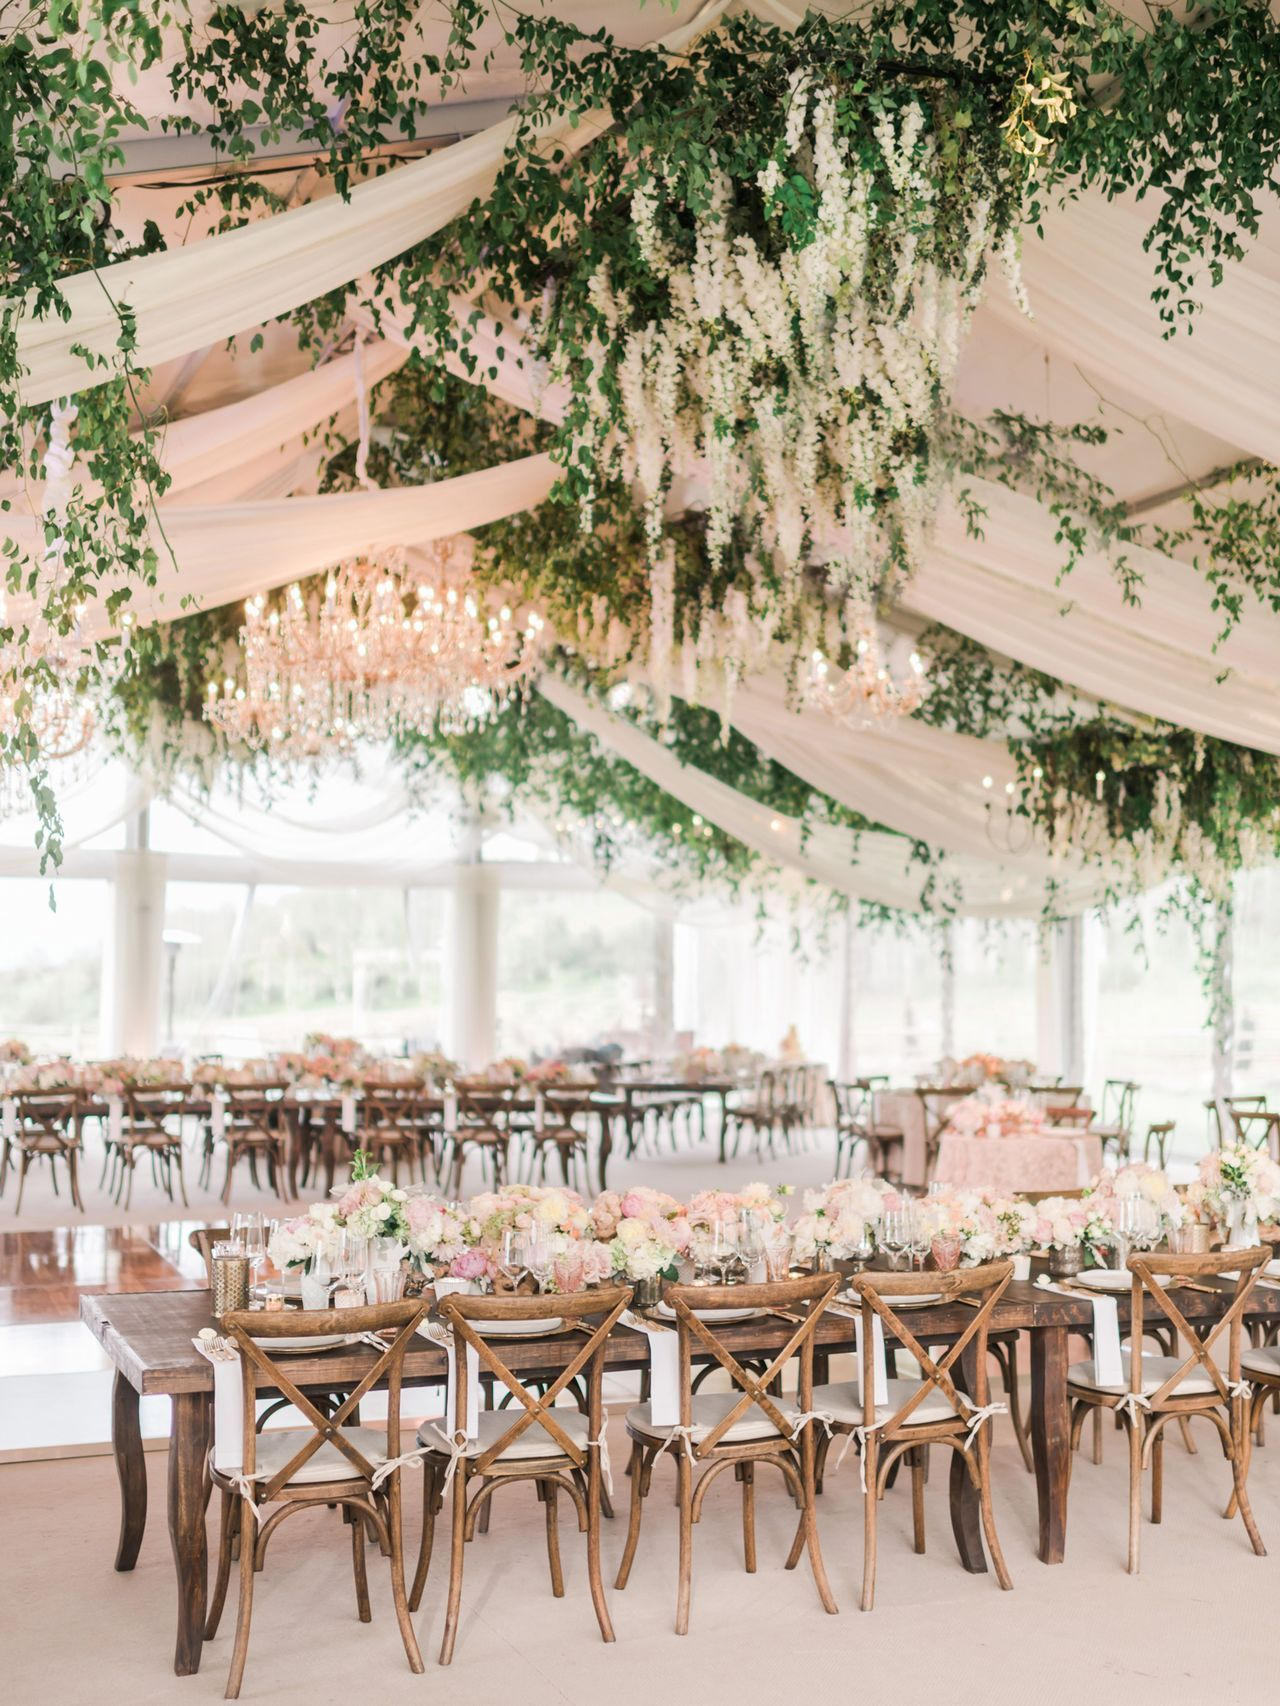 Gorgeous yet Budget-friendly Floral Wedding Decorations